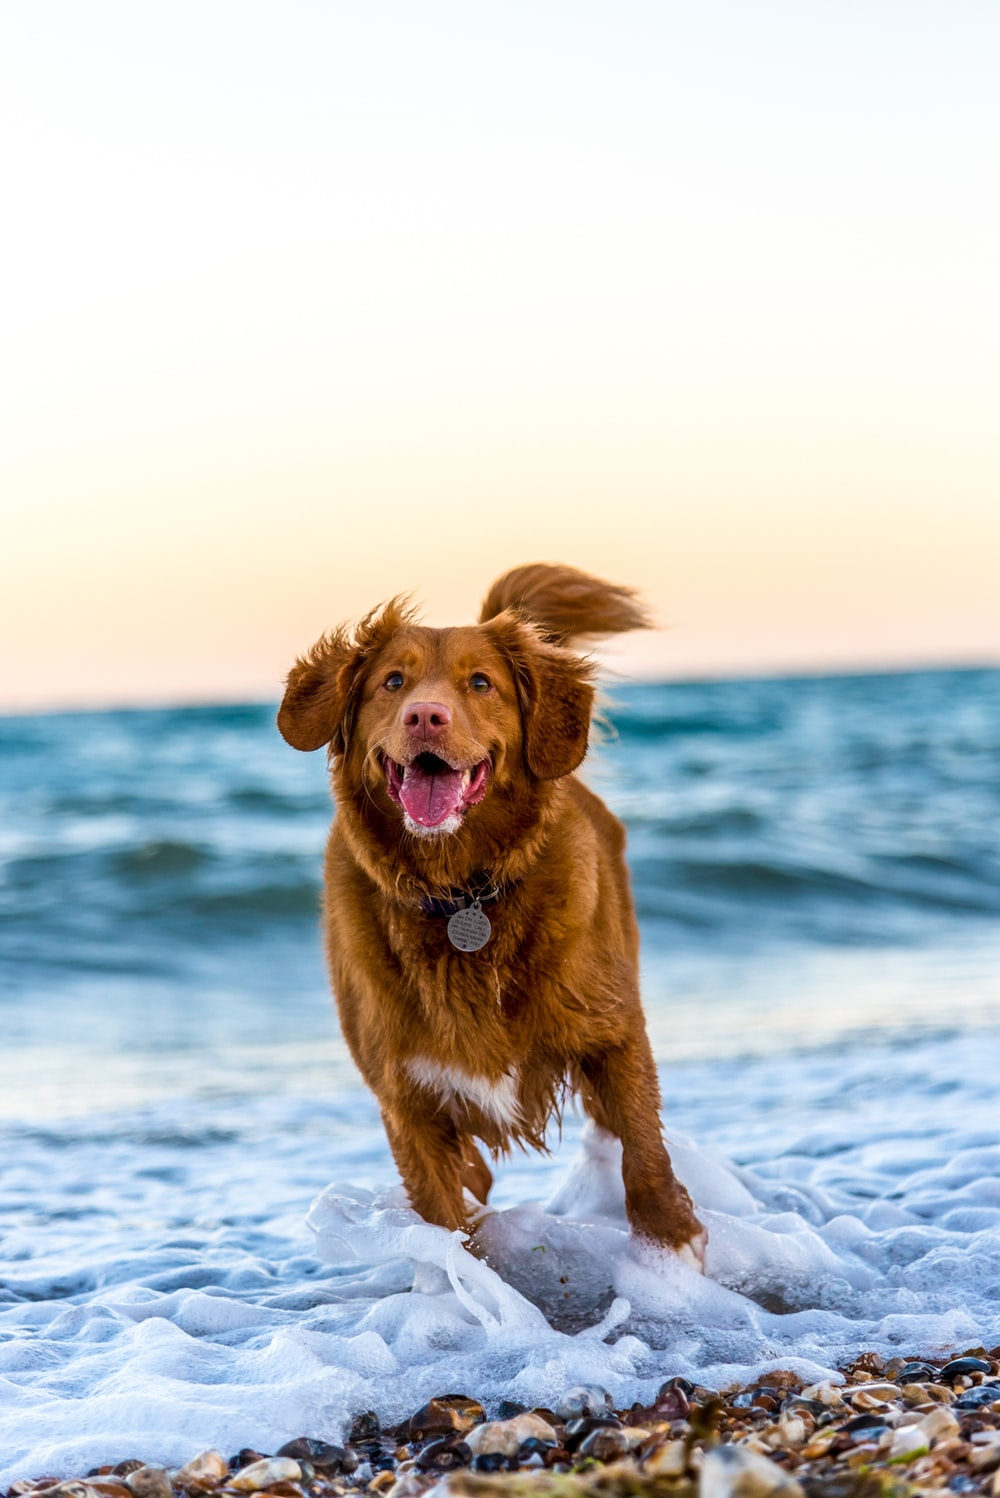 dog running on beach during daytime